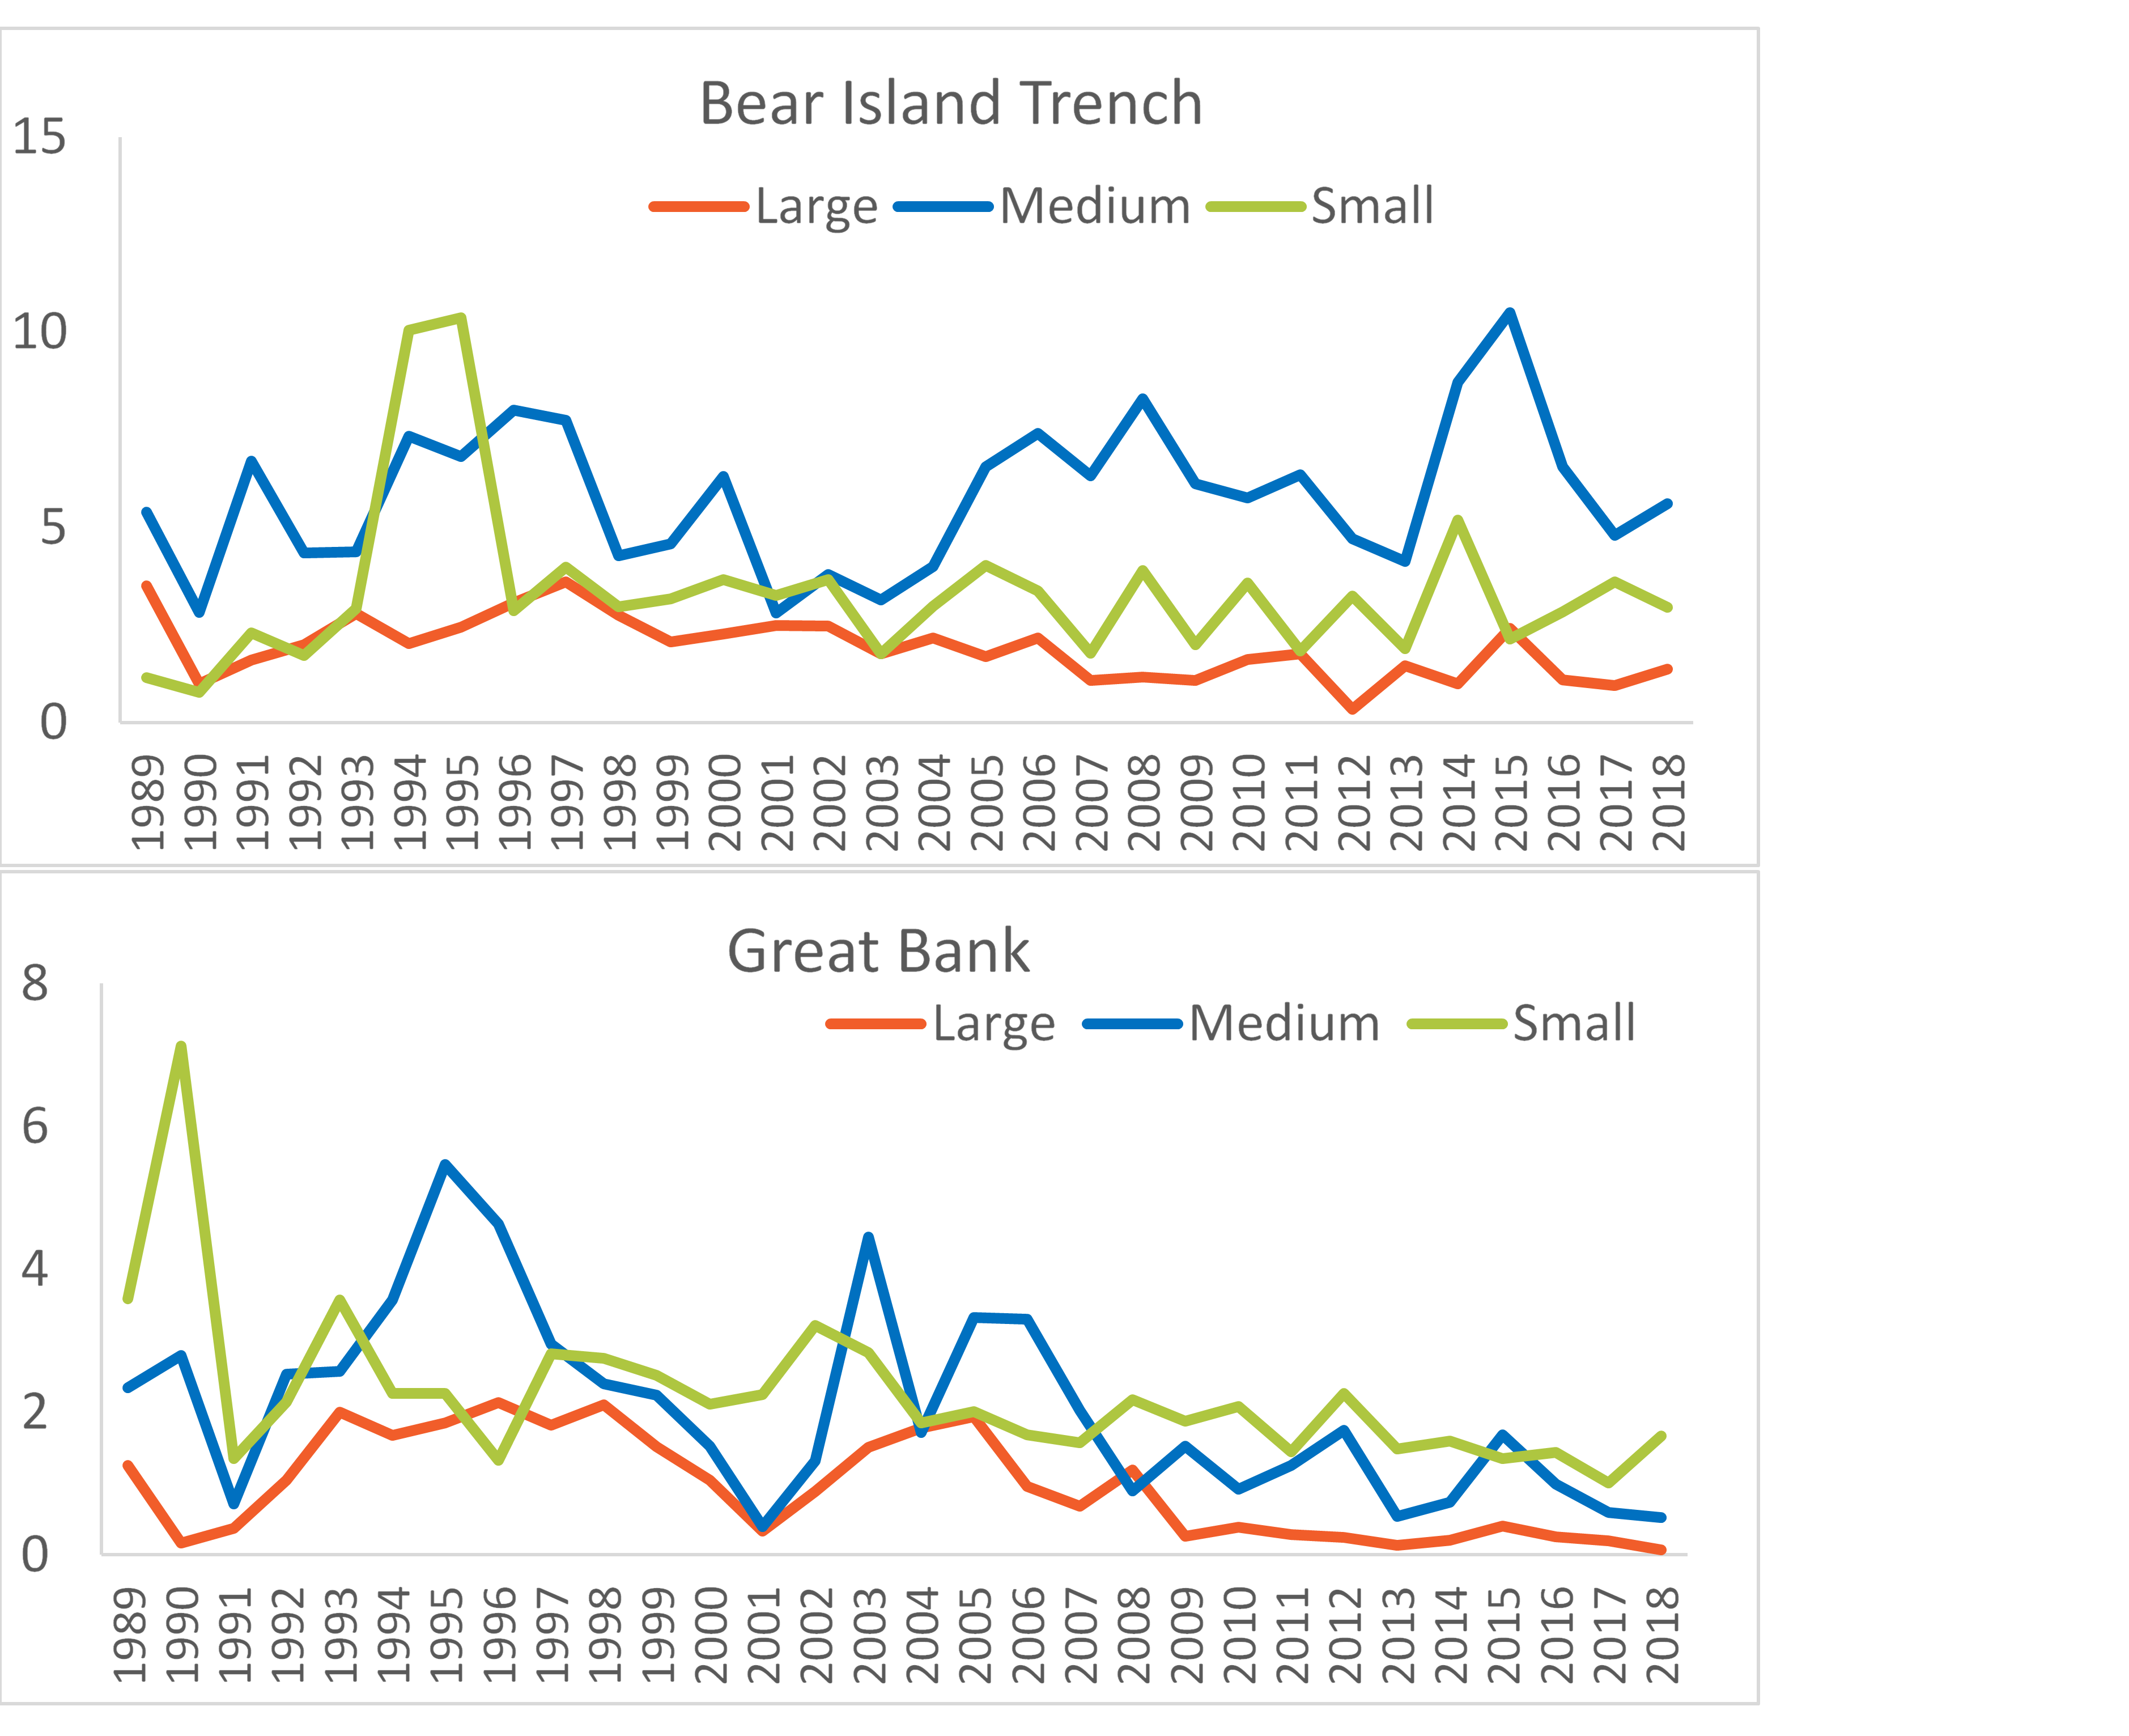 Figure 3.3.4. Zooplankton biomass (g dry-weight m-2) in three size fractions (small <1 mm, medium 1-2 mm, and large >2 mm) for Bear Island Trough (upper panel) and Great Bank (lower panel) subareas for the 1989-2018 period. Note: Size fractions are based on screen mesh size, not size of individual zooplankton.